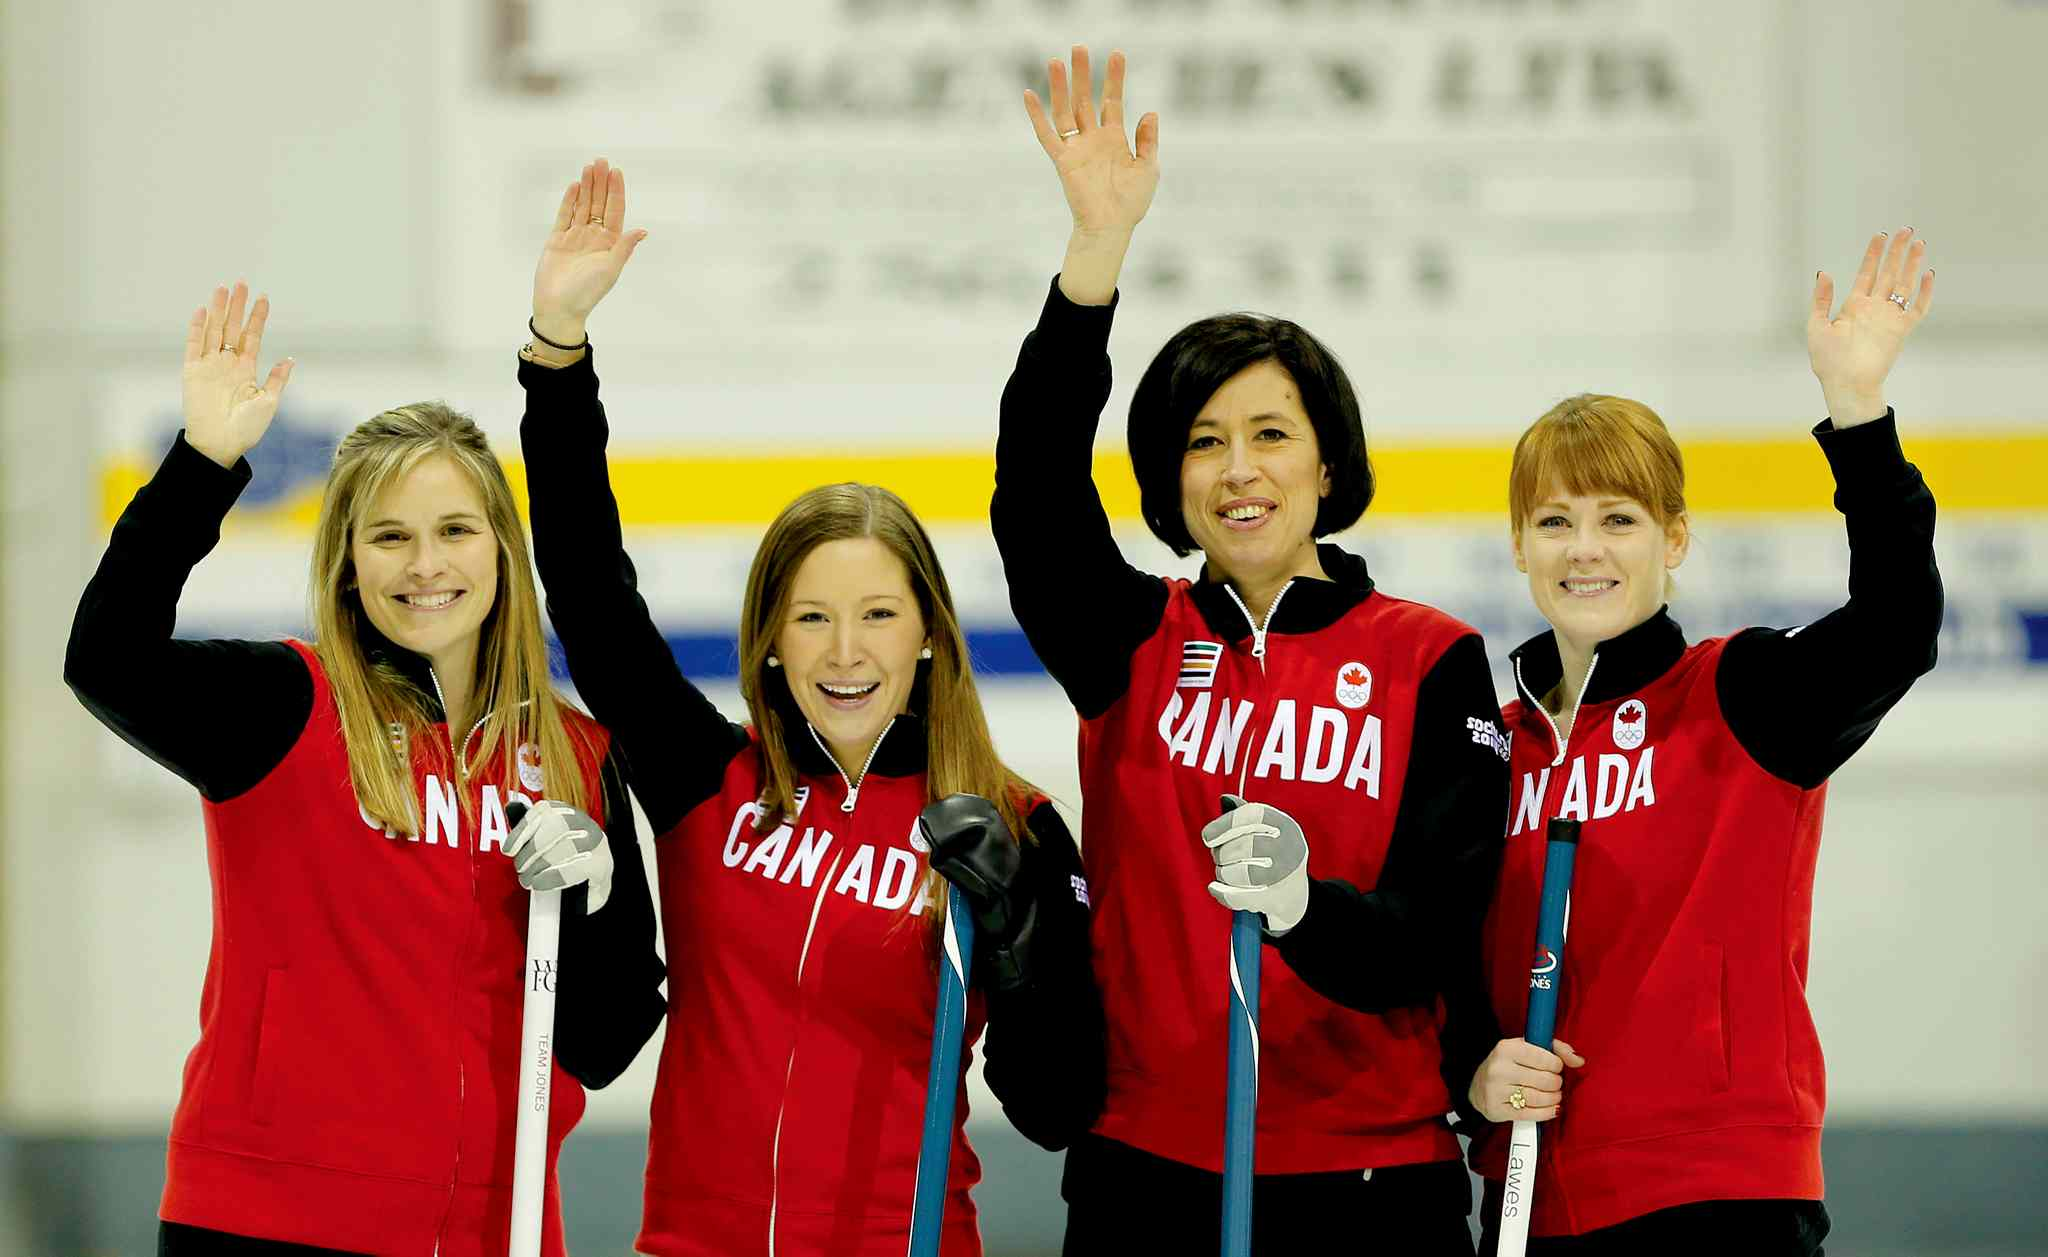 The Canadian Women's Curling team's Jennifer Jones, Kaitlyn Lawes, Jill Officer and Dawn McEwen.